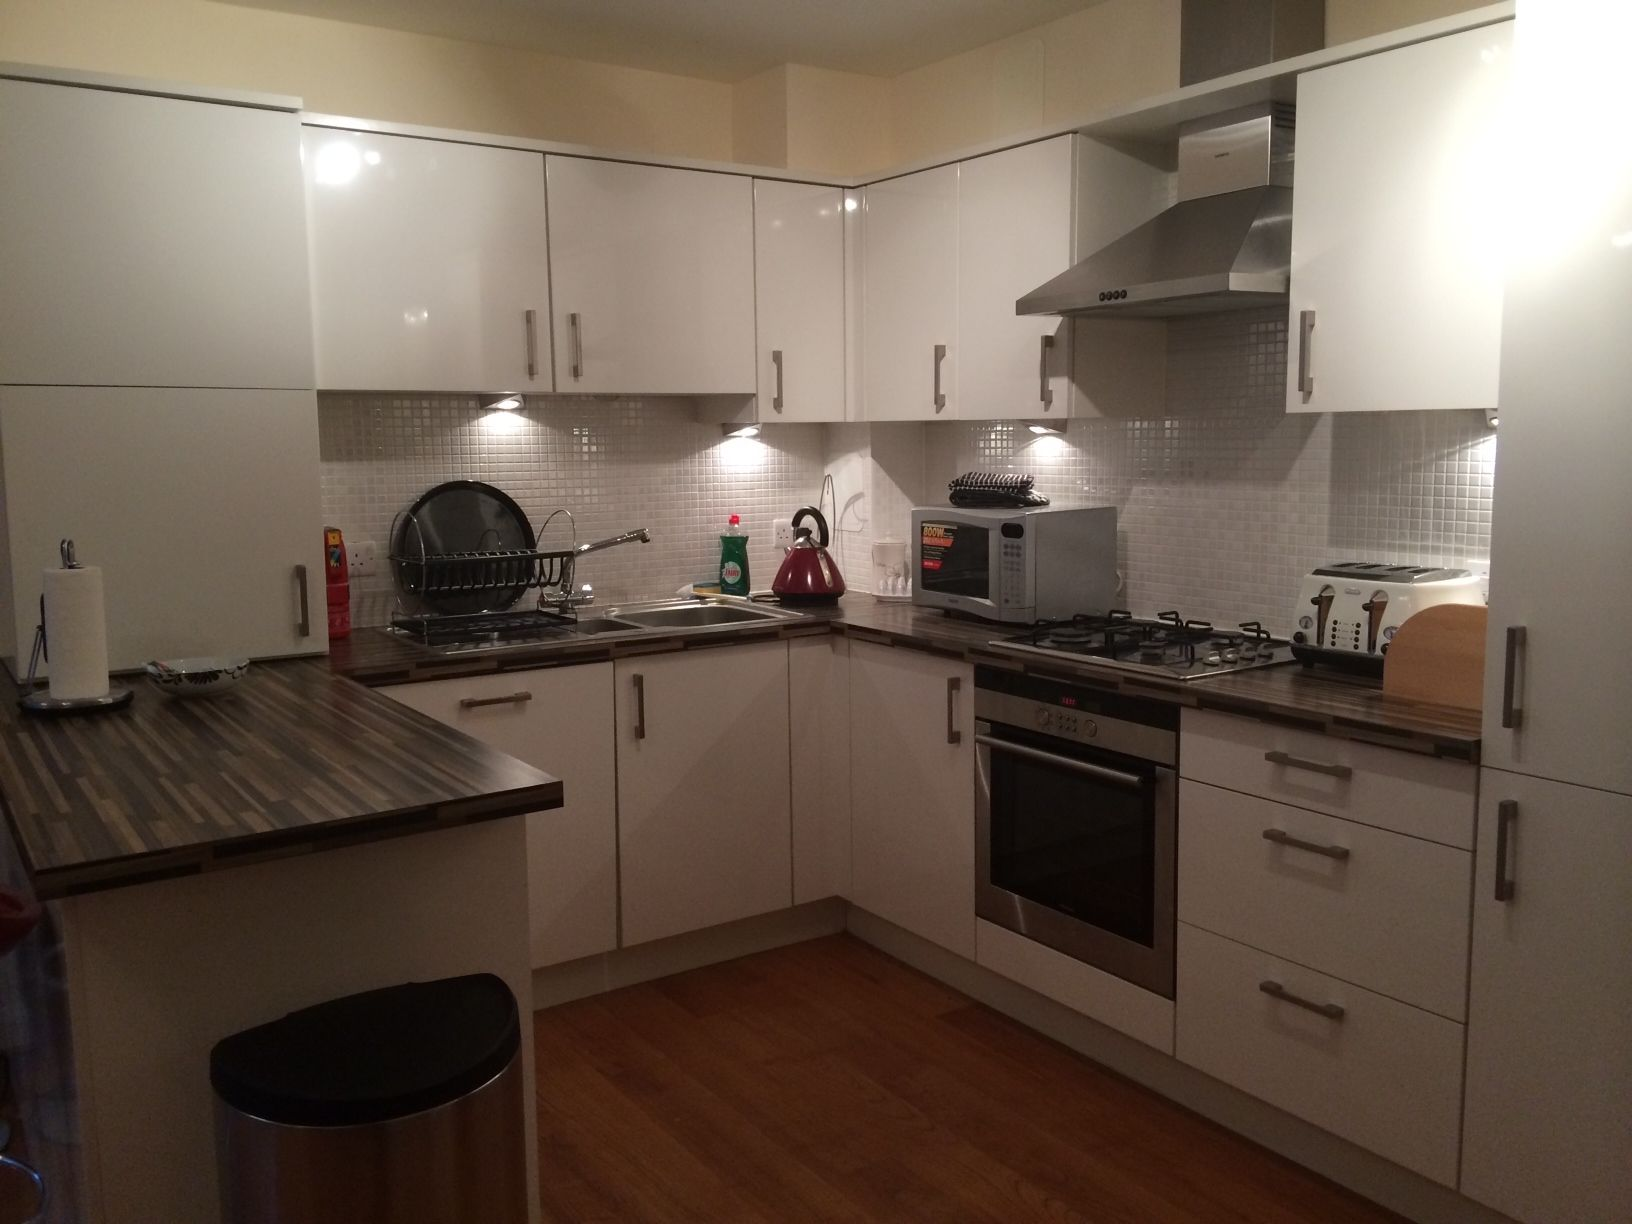 Aberdeen City North Dreamhouse Apartments 3 bedrooms